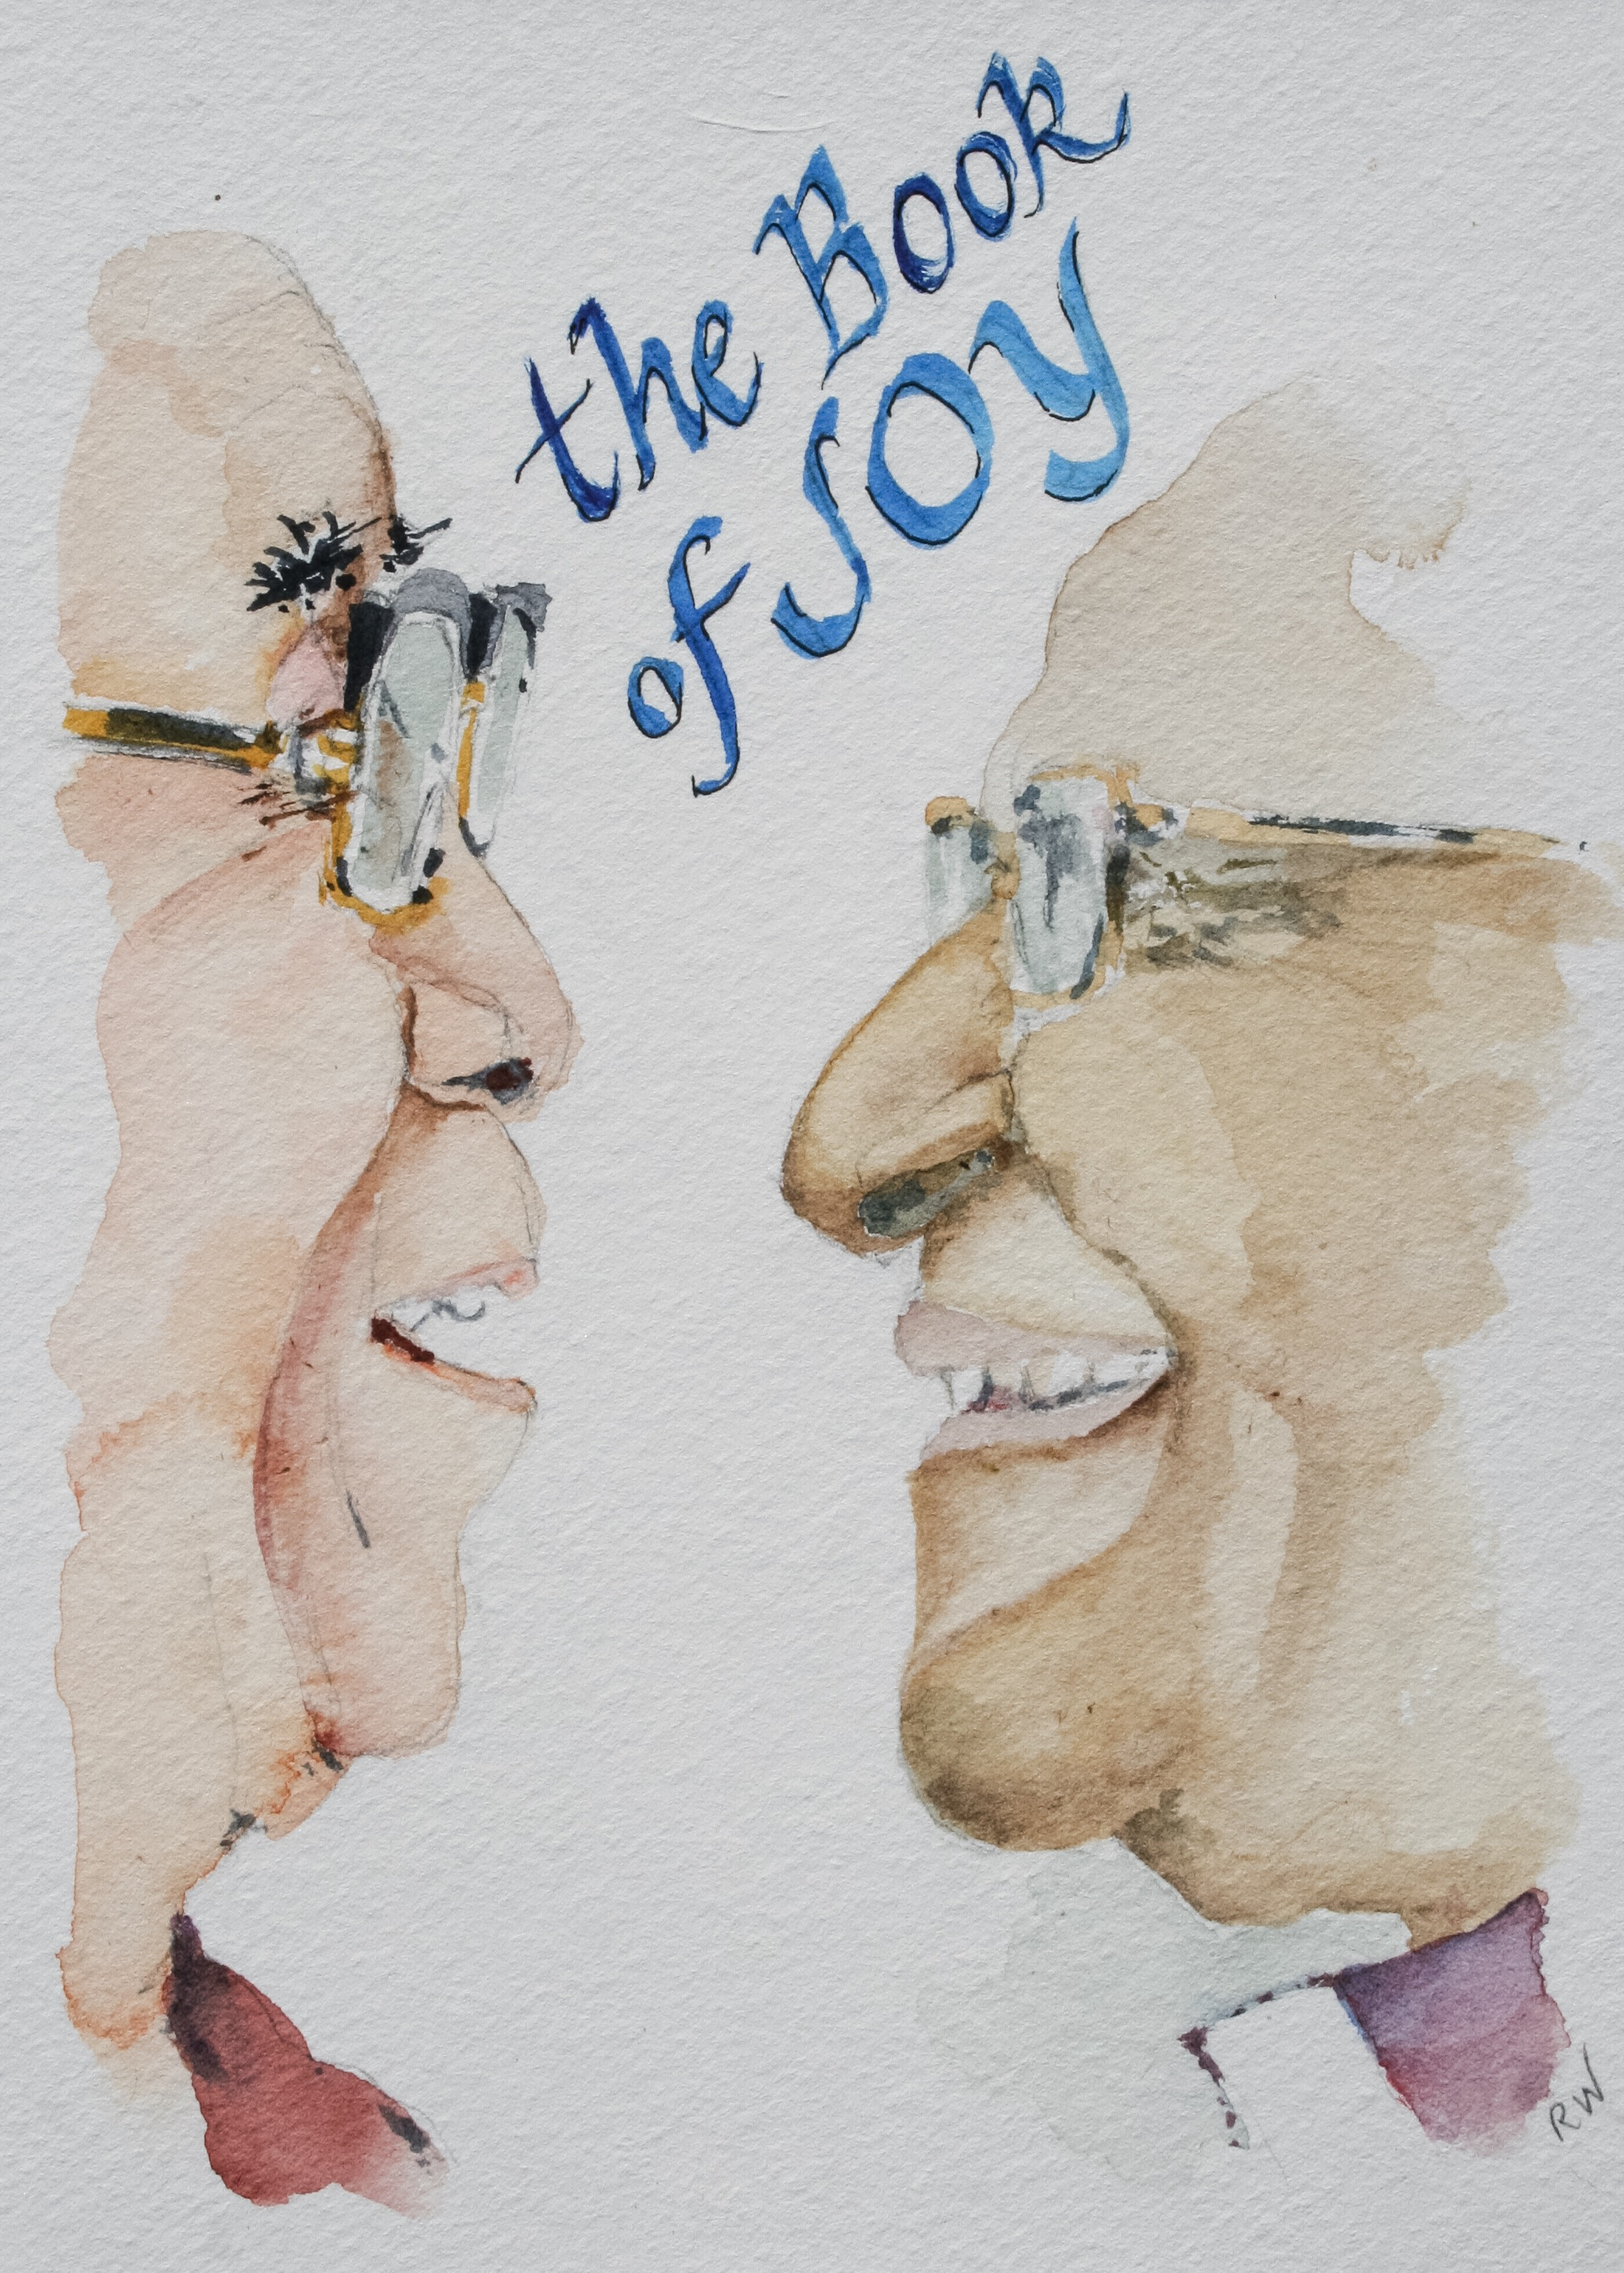 Watercolor book covers - The Book Of Joy By His Holiness The Dalai Lama And Archbishop Desmond Tutu